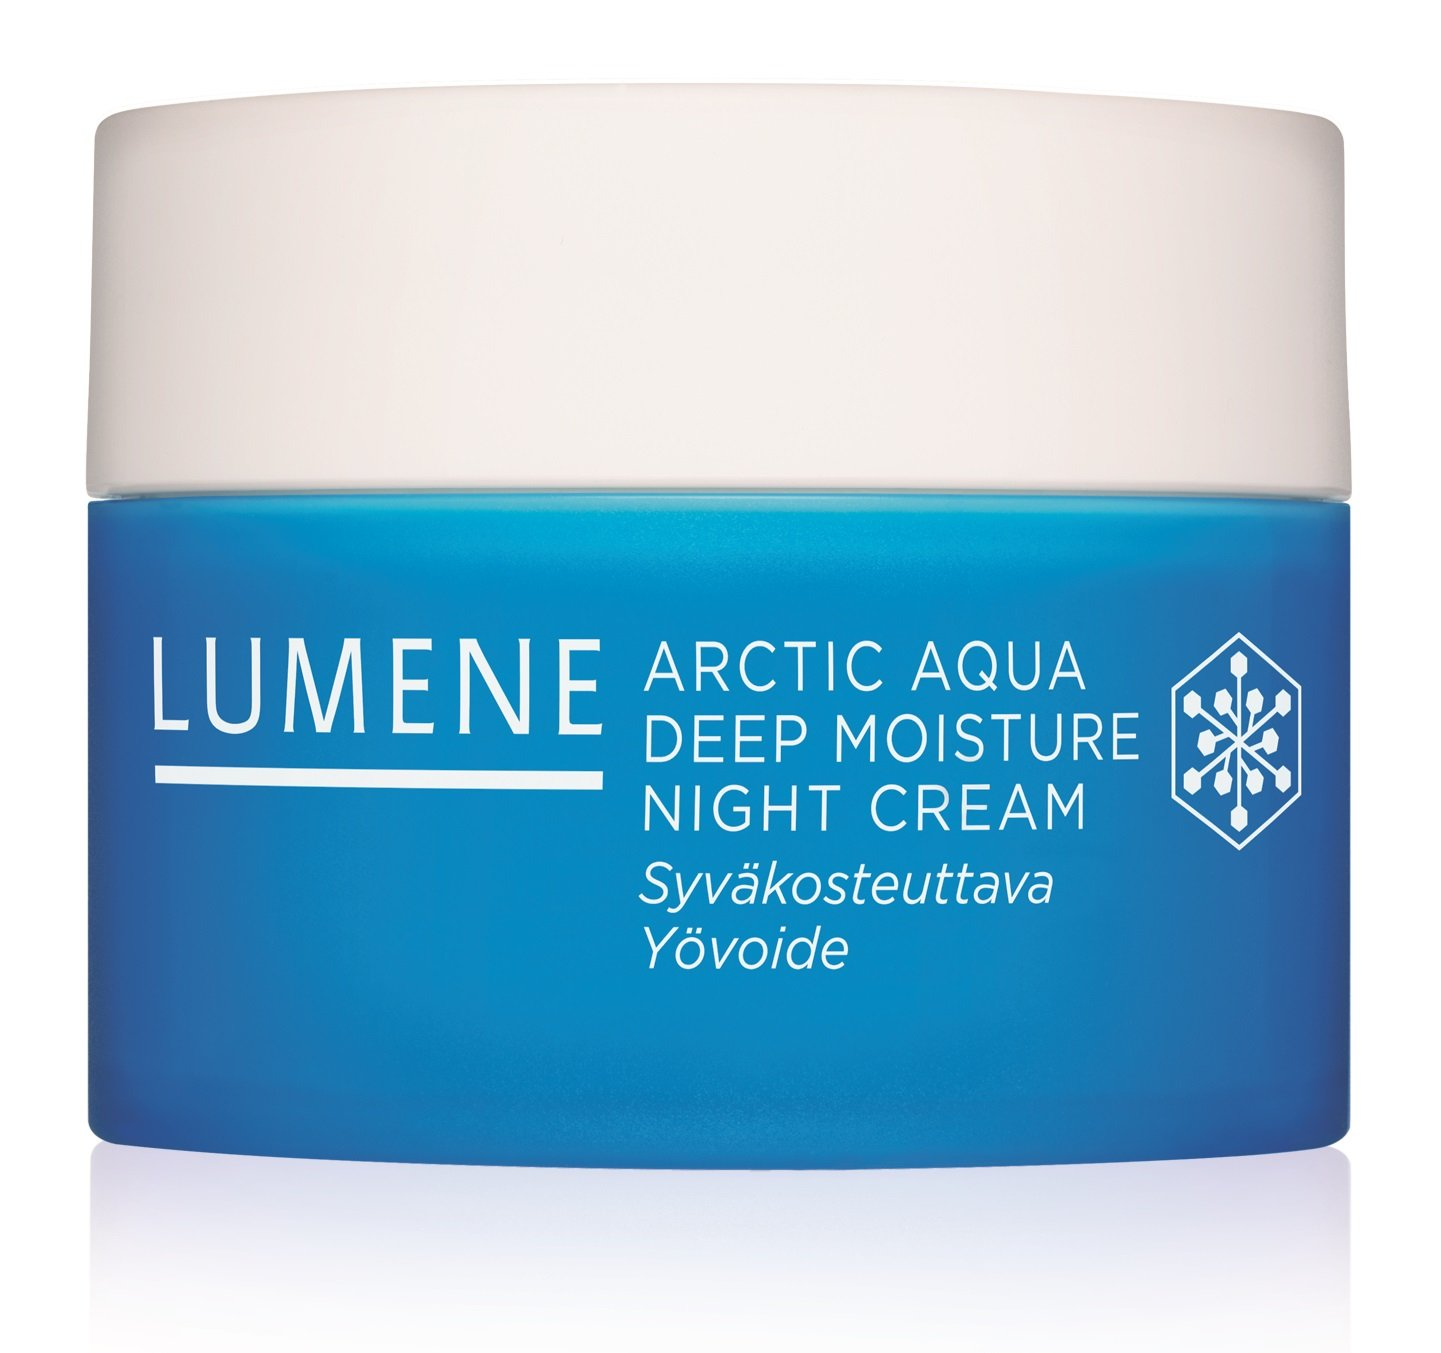 Lumene night cream